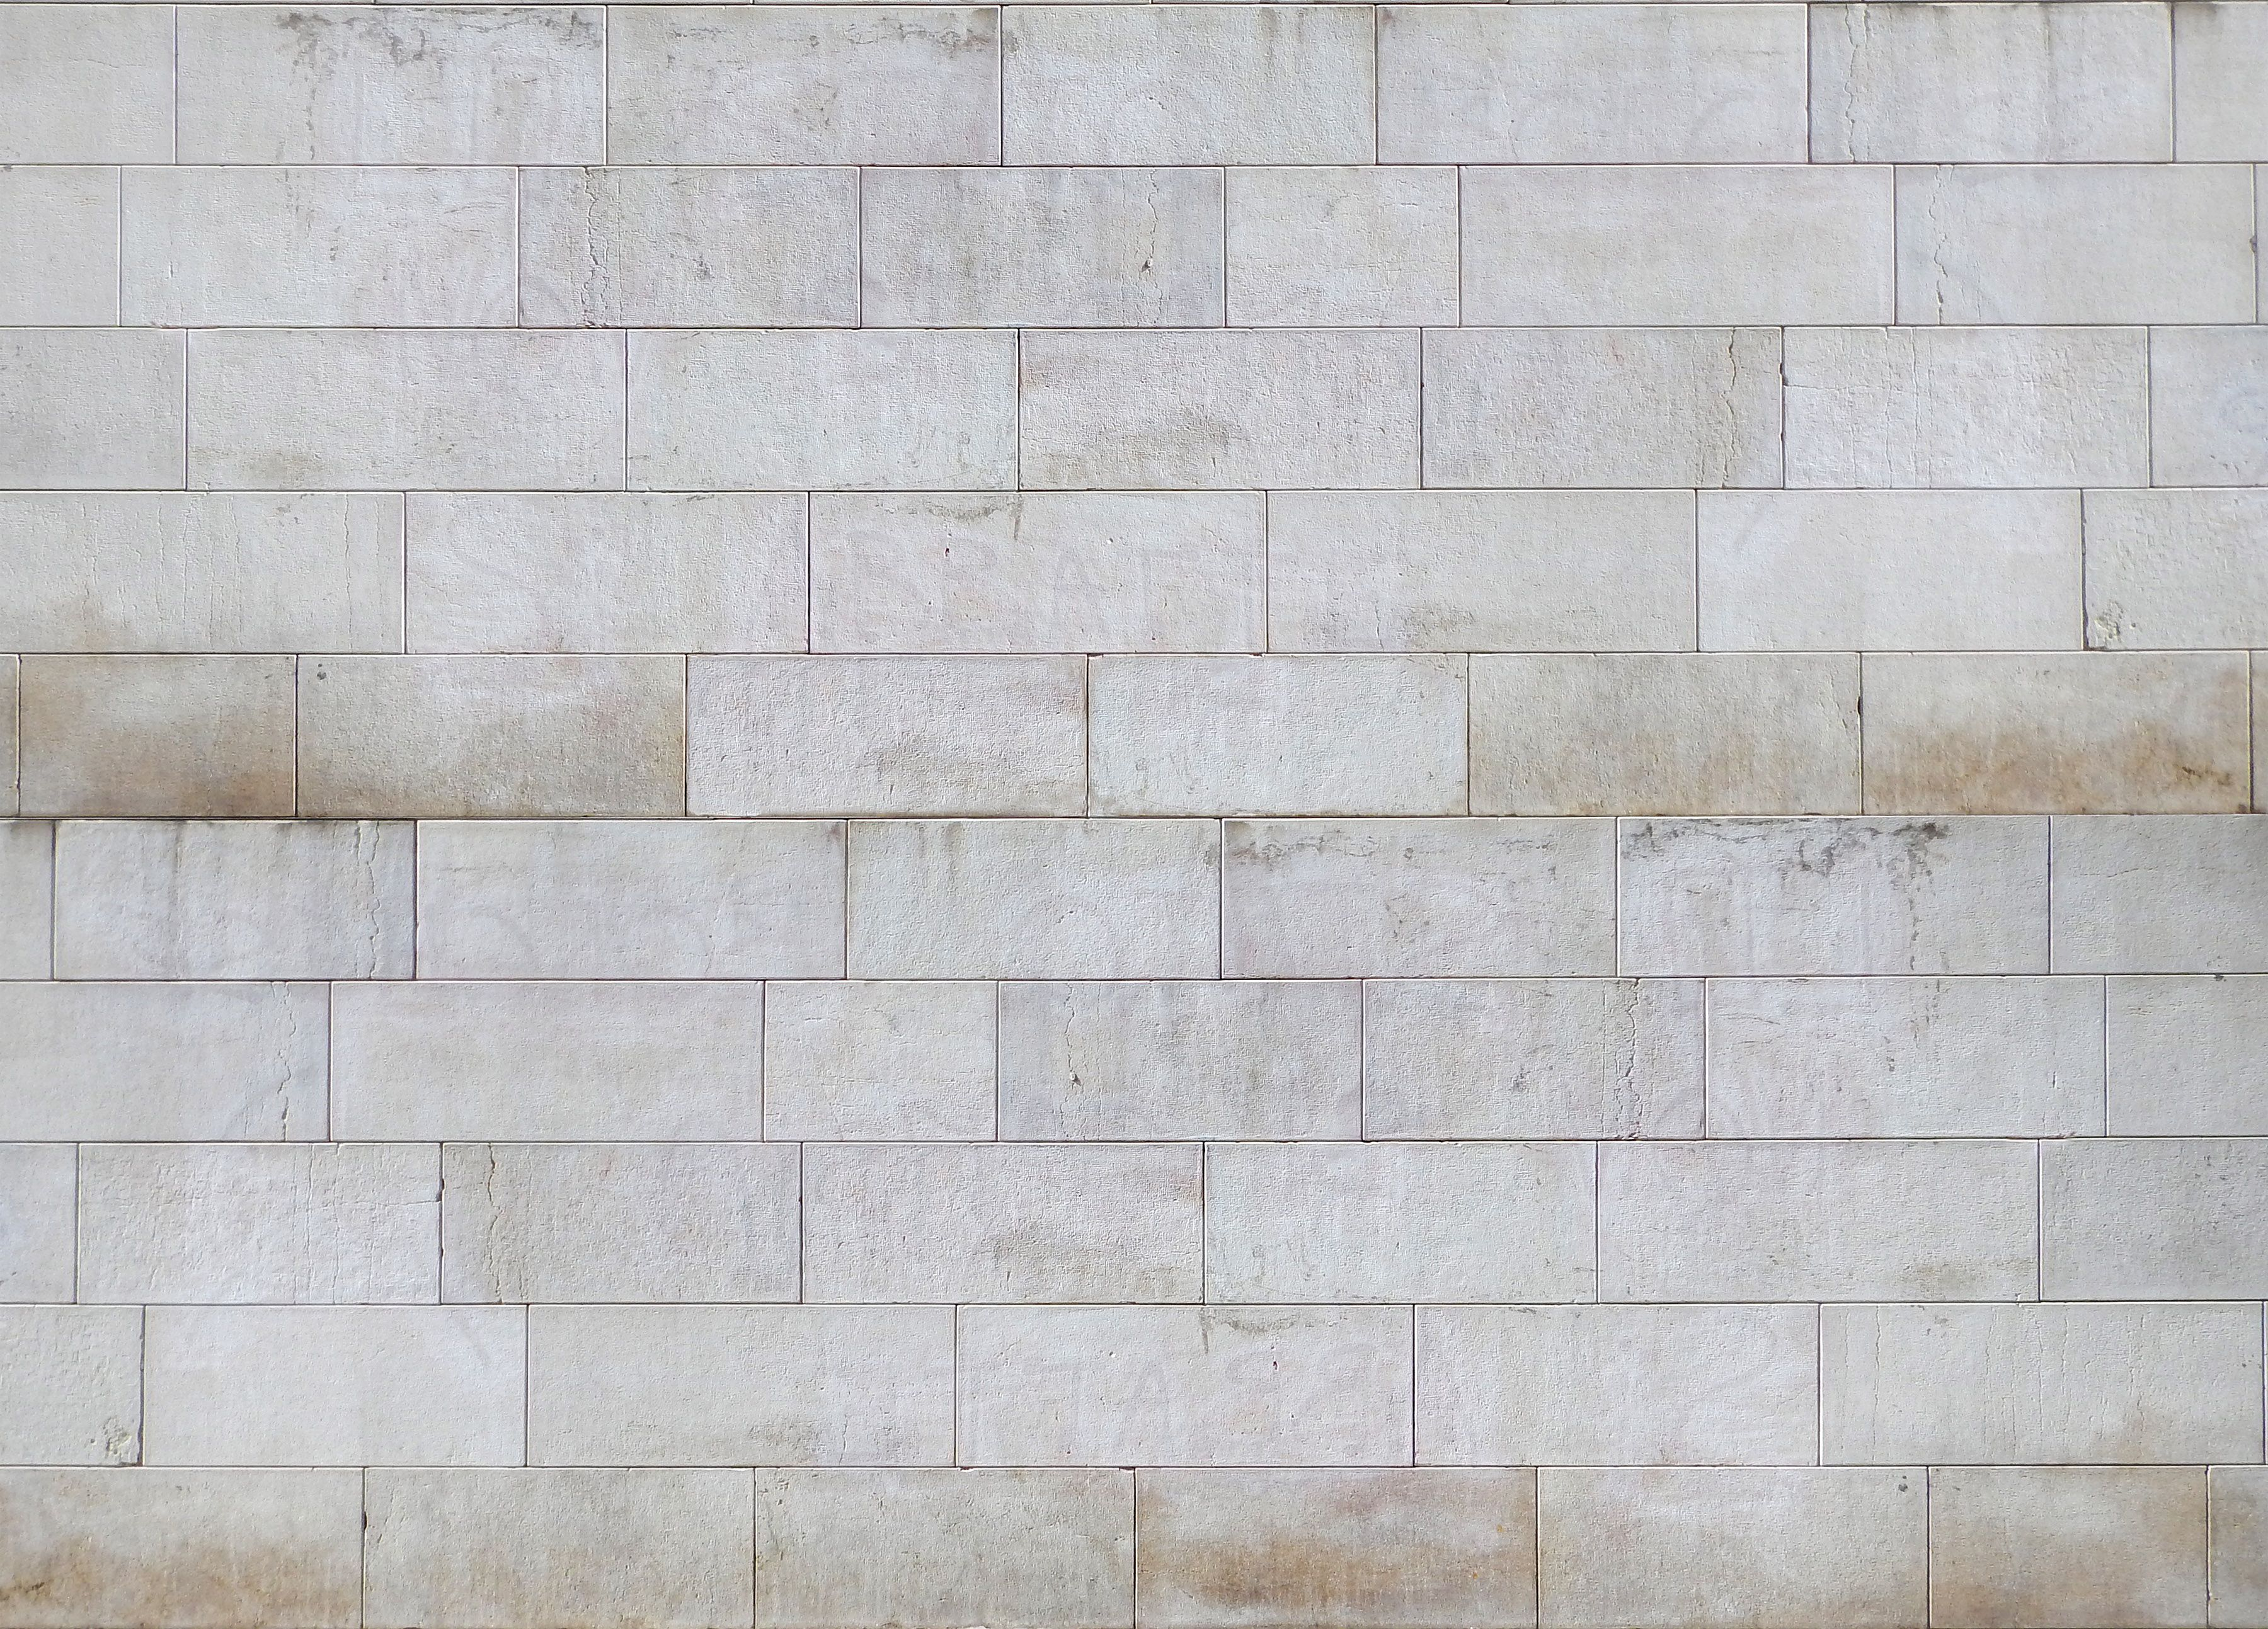 Pin by Pong Lizardo on Graphic Design: Textures | Stone ...